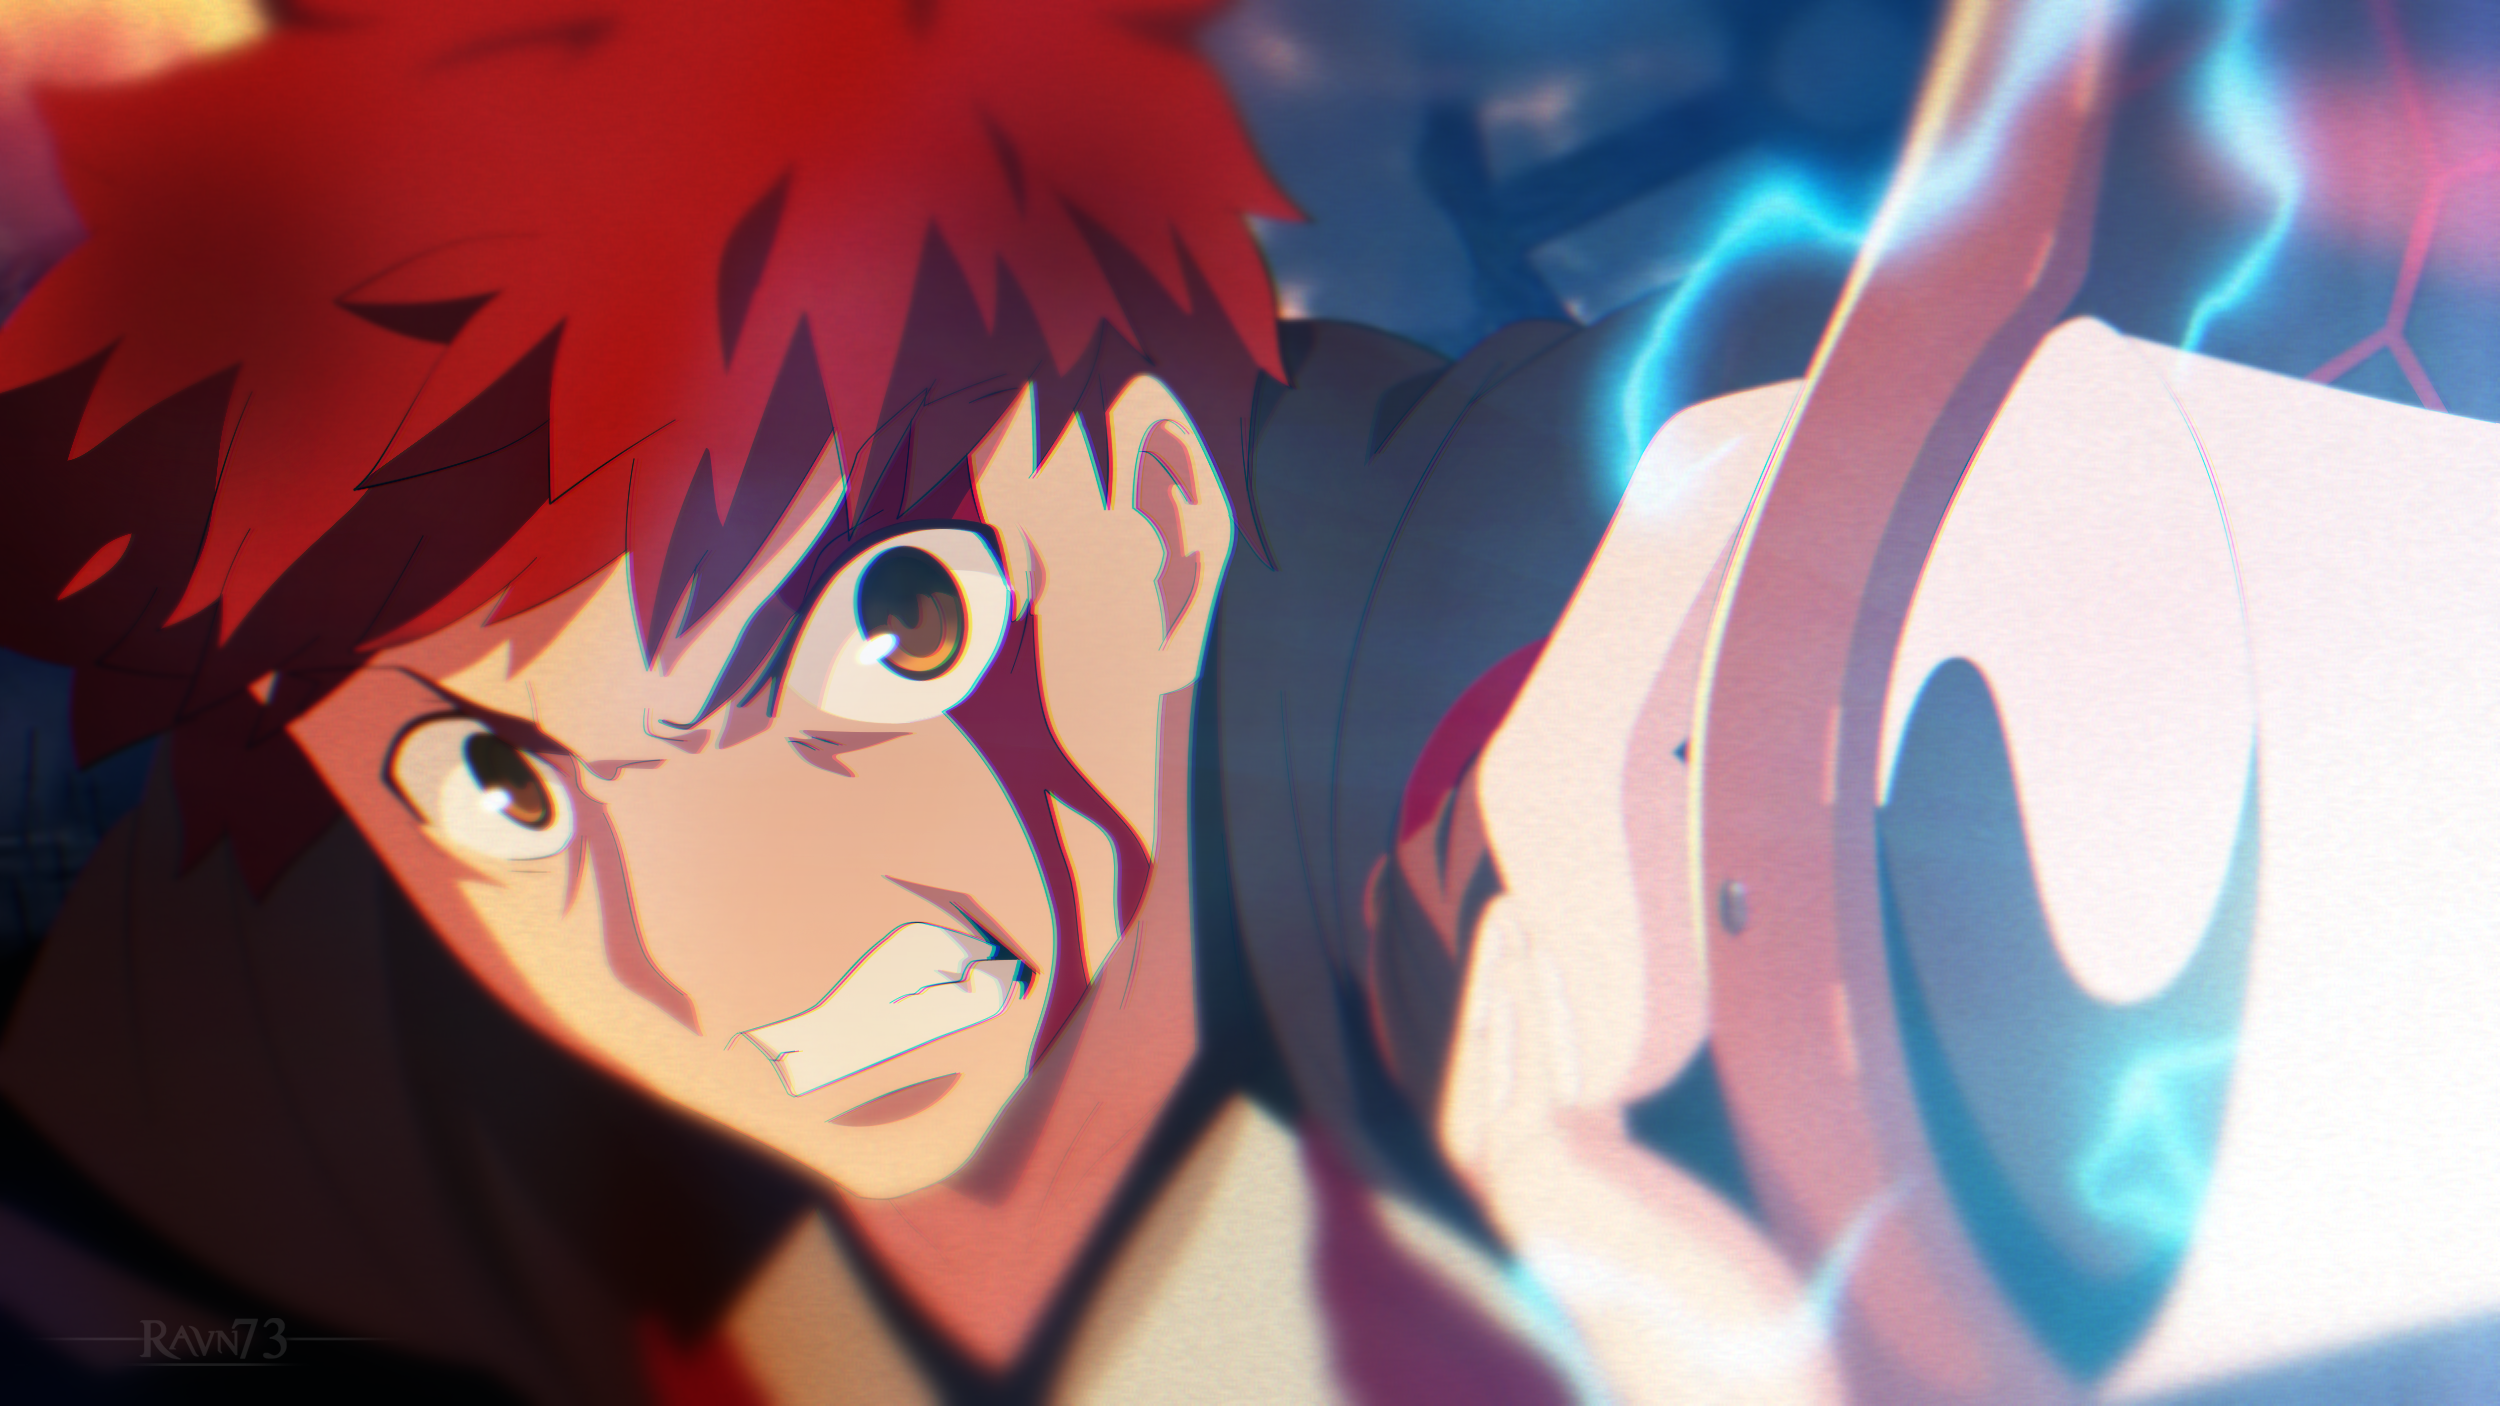 FateStay Night Shirou Emiya Anime Unlimited Blade Works Download Wallpaper